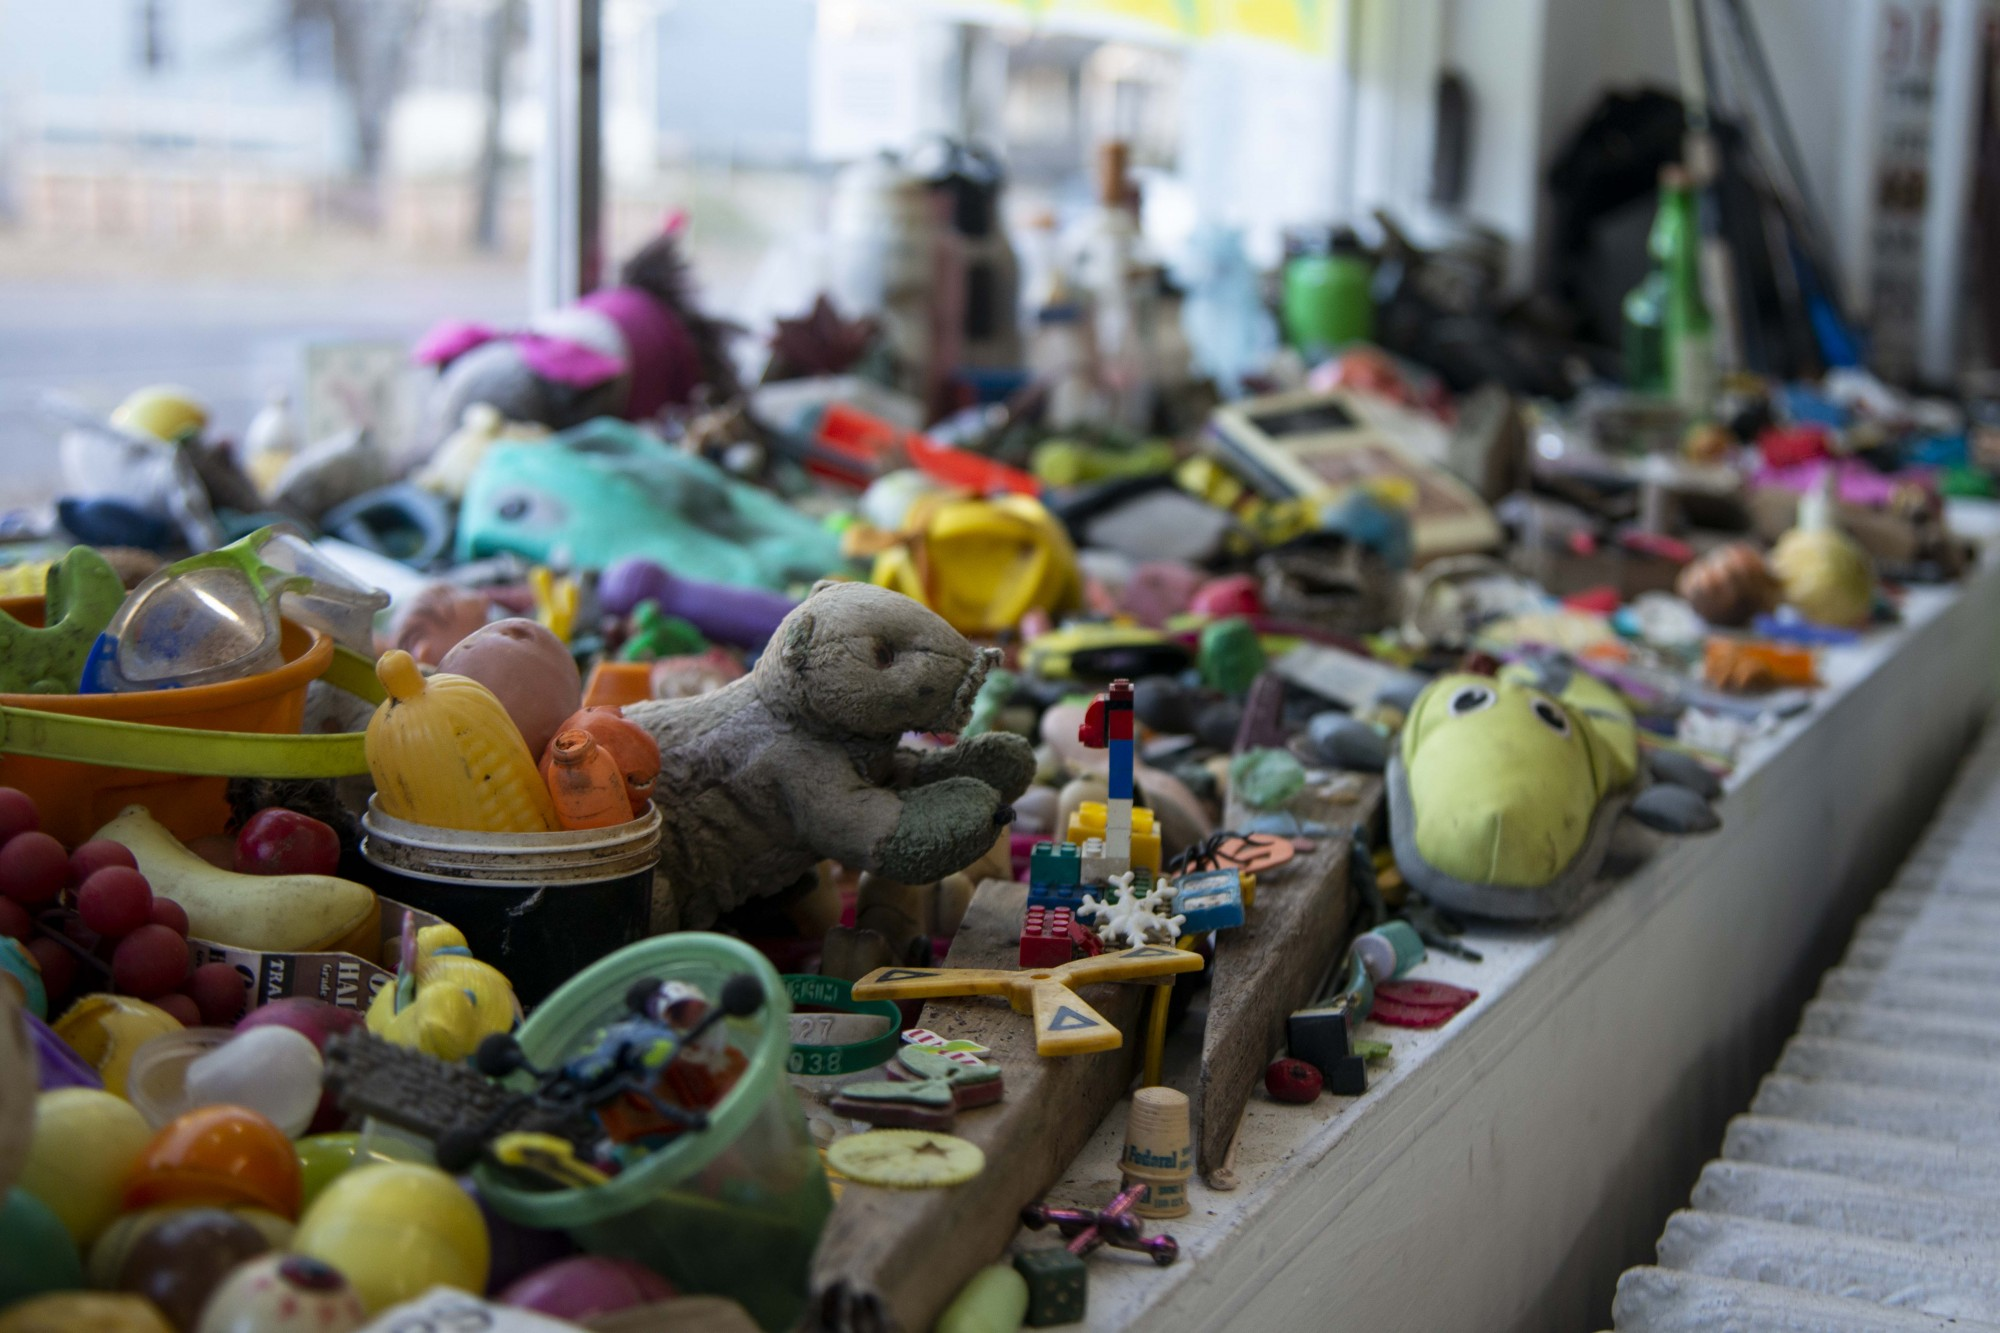 Toys that have been collected from Lake Hiawatha sit on display at The White Page gallery on Friday, Nov. 15. Since 2015, 6,800 pounds of trash have been removed under Sean Connaughty's stewardship.